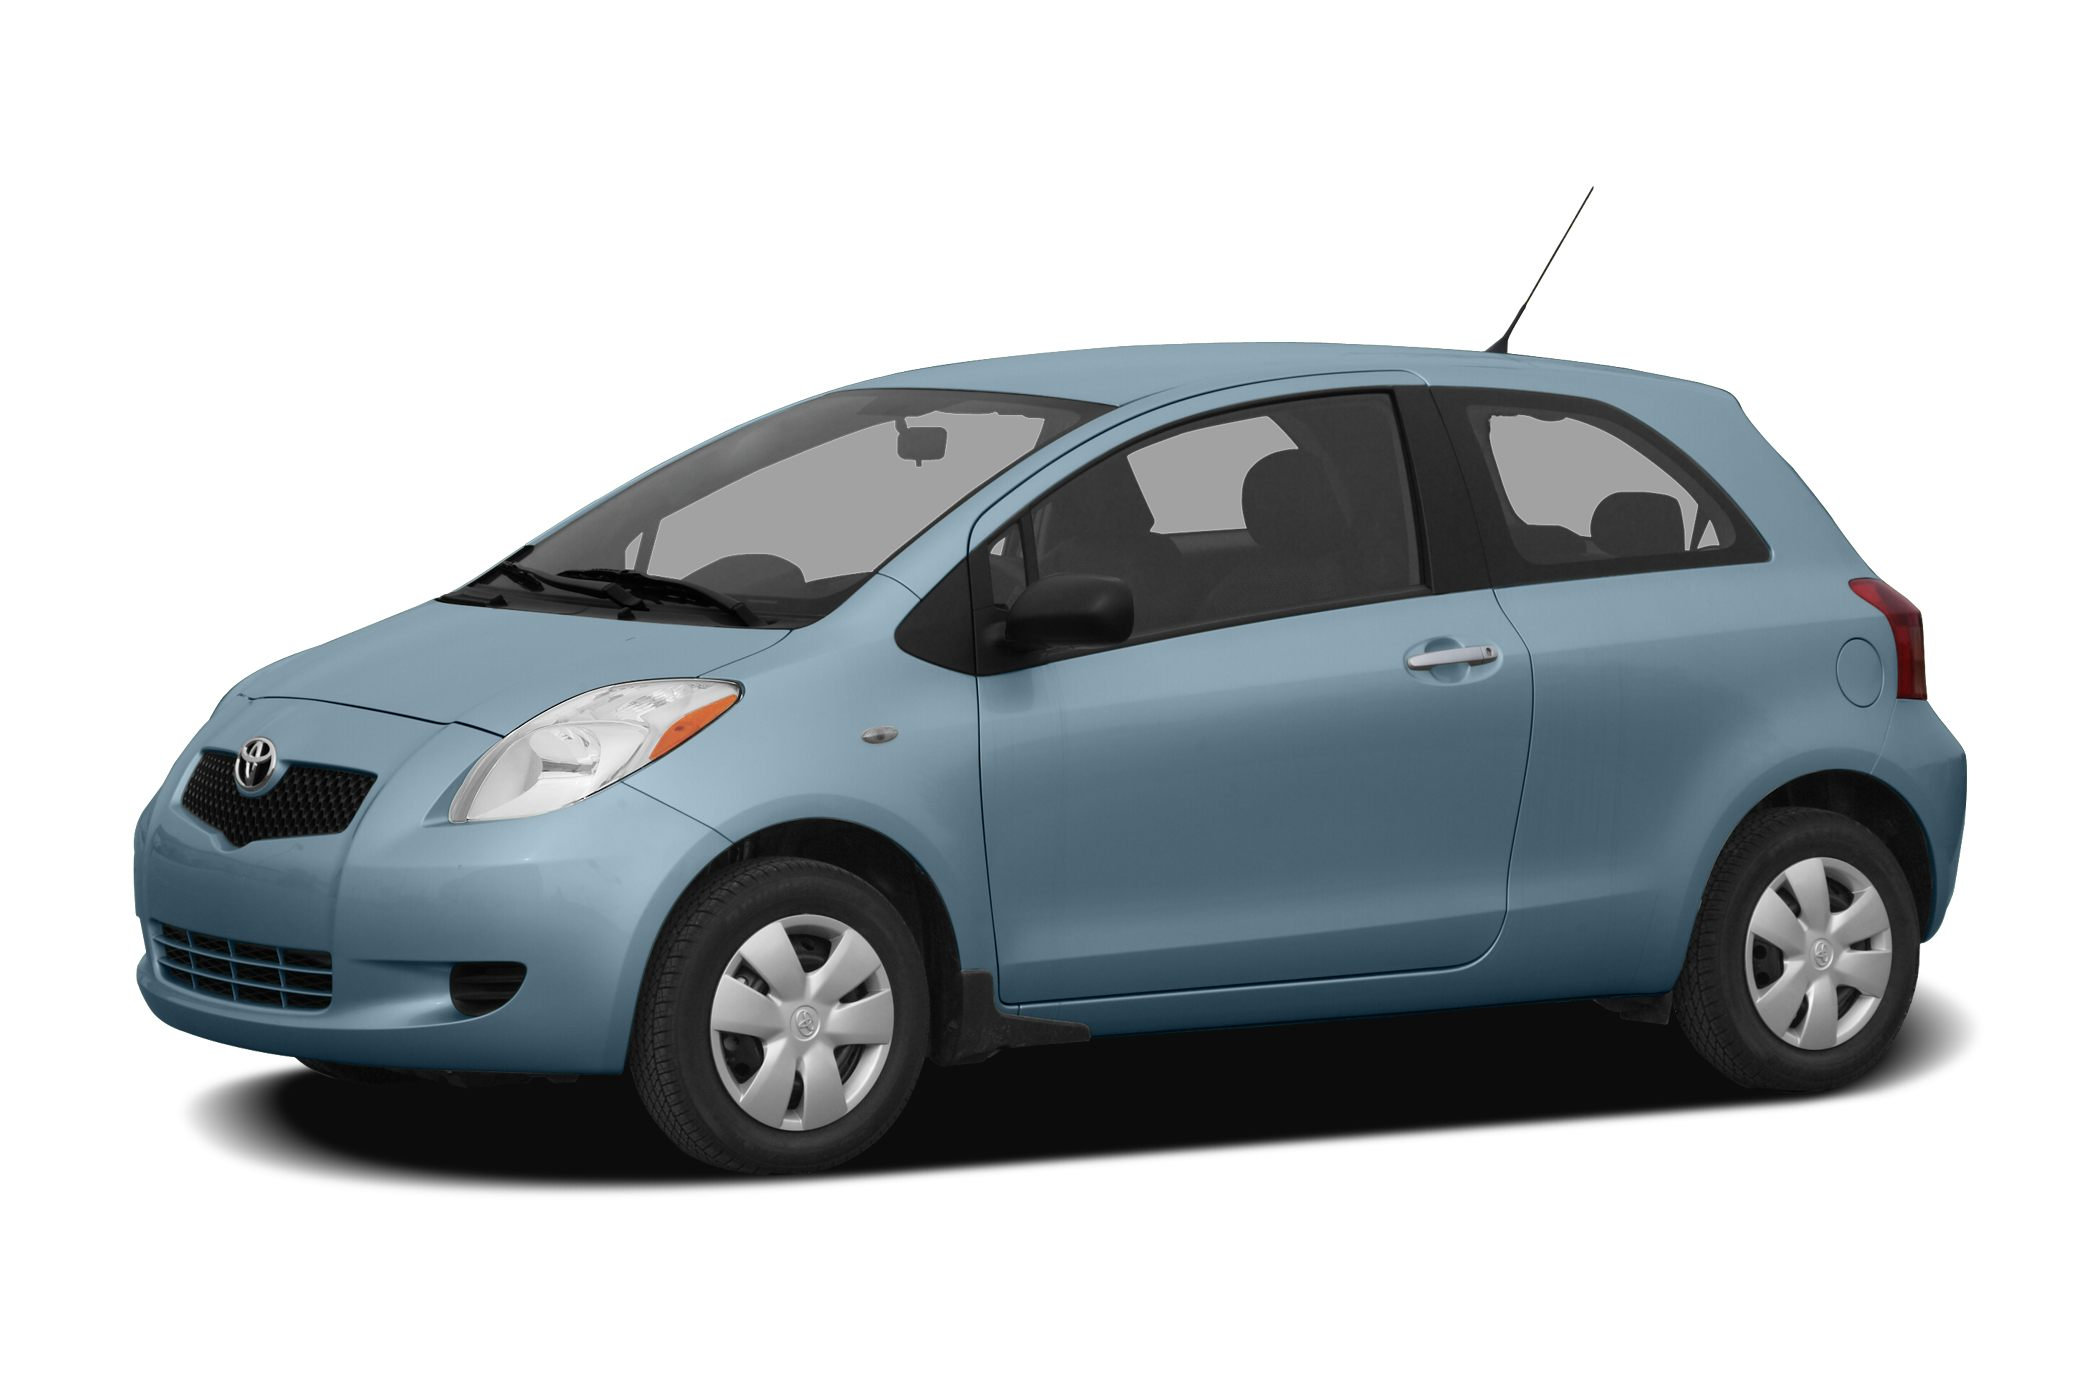 toyota yaris 2007 model specifications